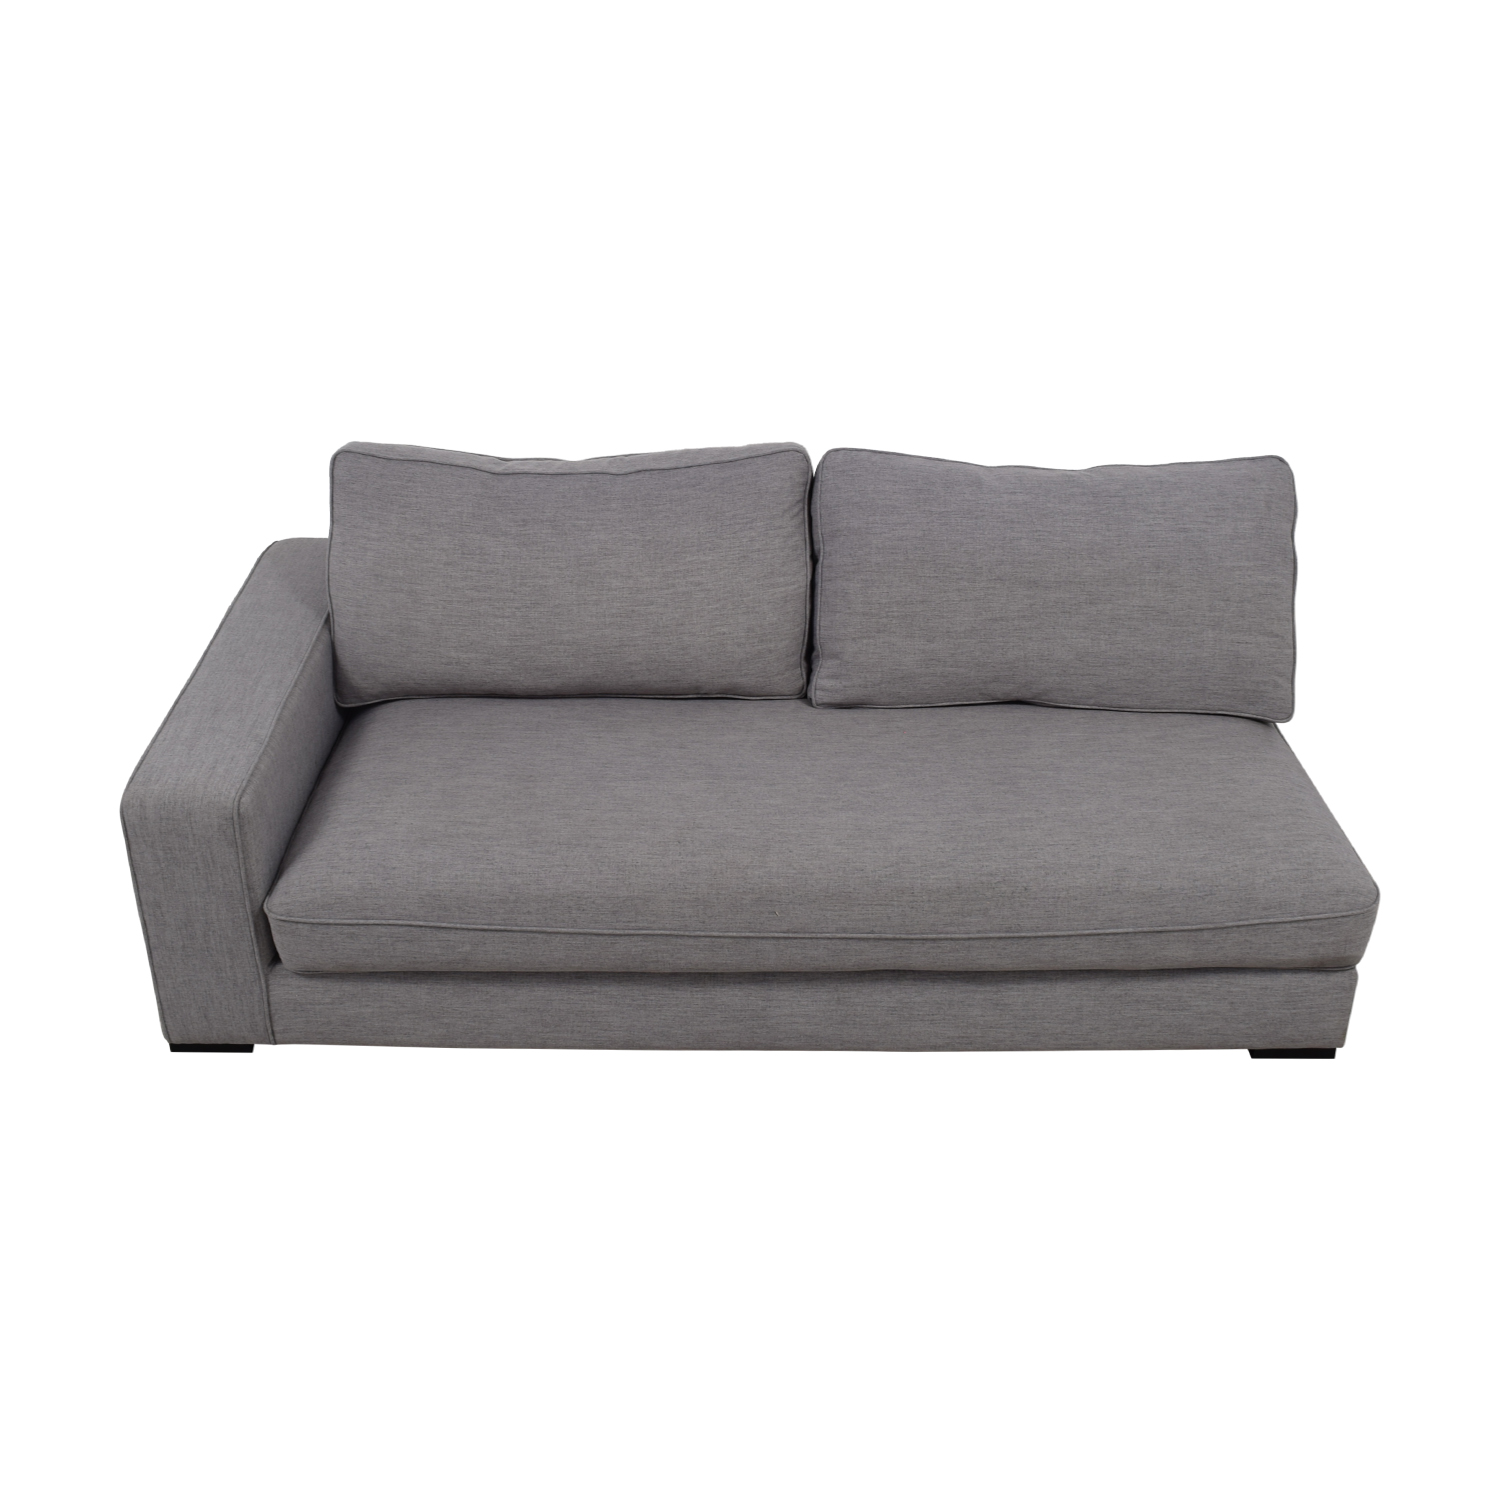 Ainsley Grey Right Arm Chaise nj